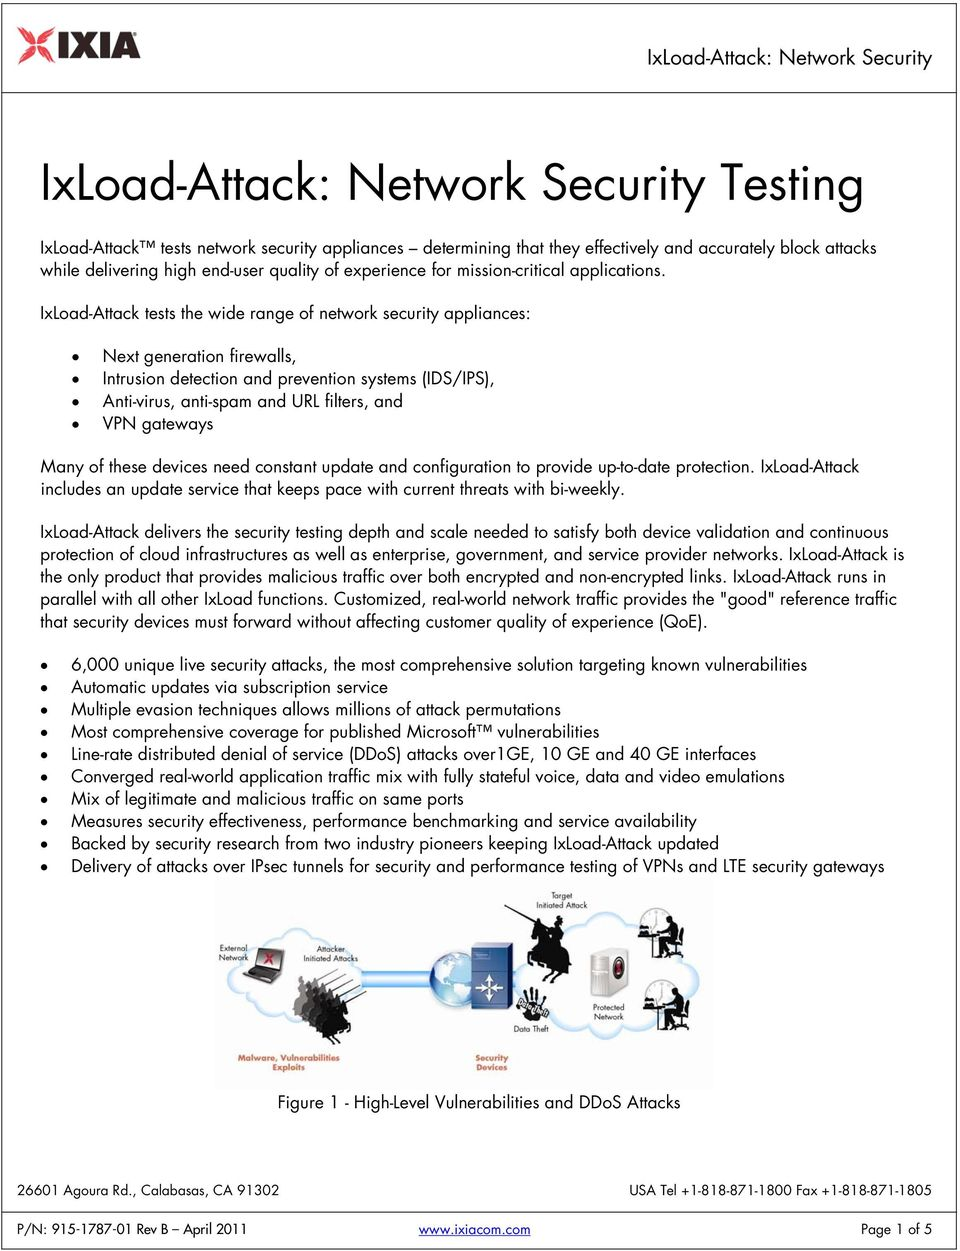 IxLoad-Attack tests the wide range of network security appliances: Next generation firewalls, Intrusion detection and prevention systems (IDS/IPS), Anti-virus, anti-spam and URL filters, and VPN